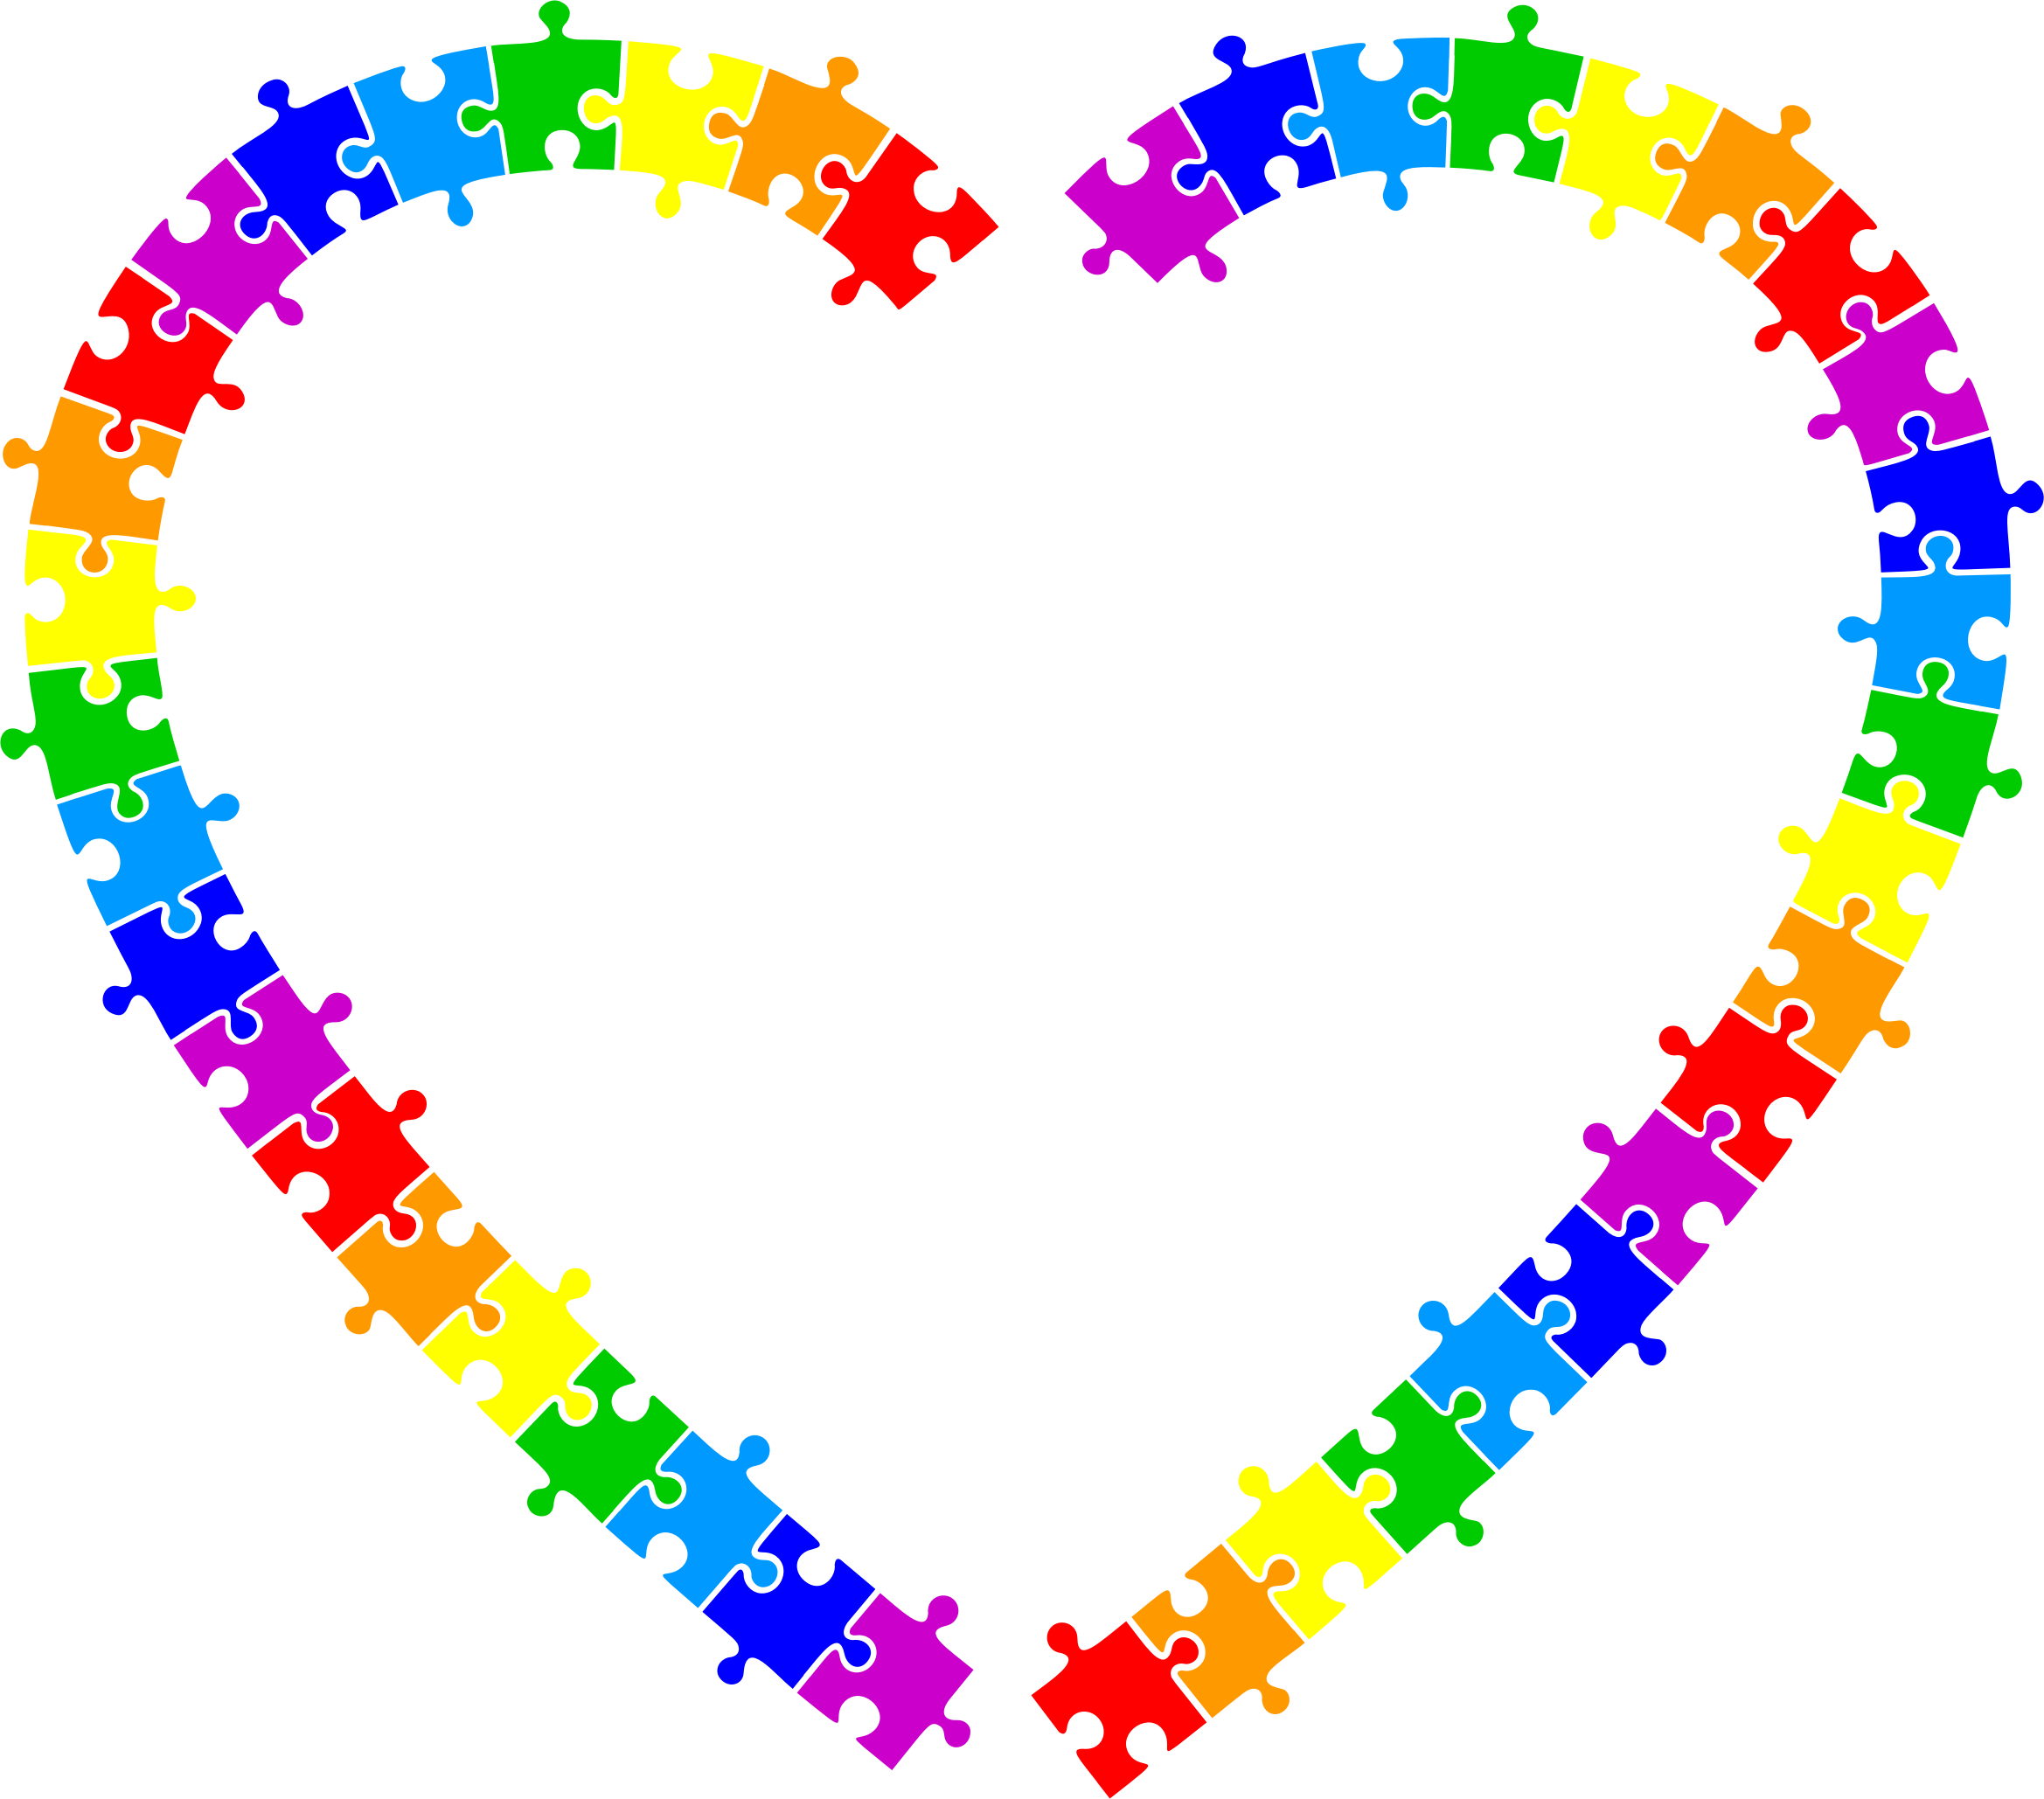 Heart puzzle clipart clipart library download Clipart - Puzzle Pieces Frame 3 clipart library download